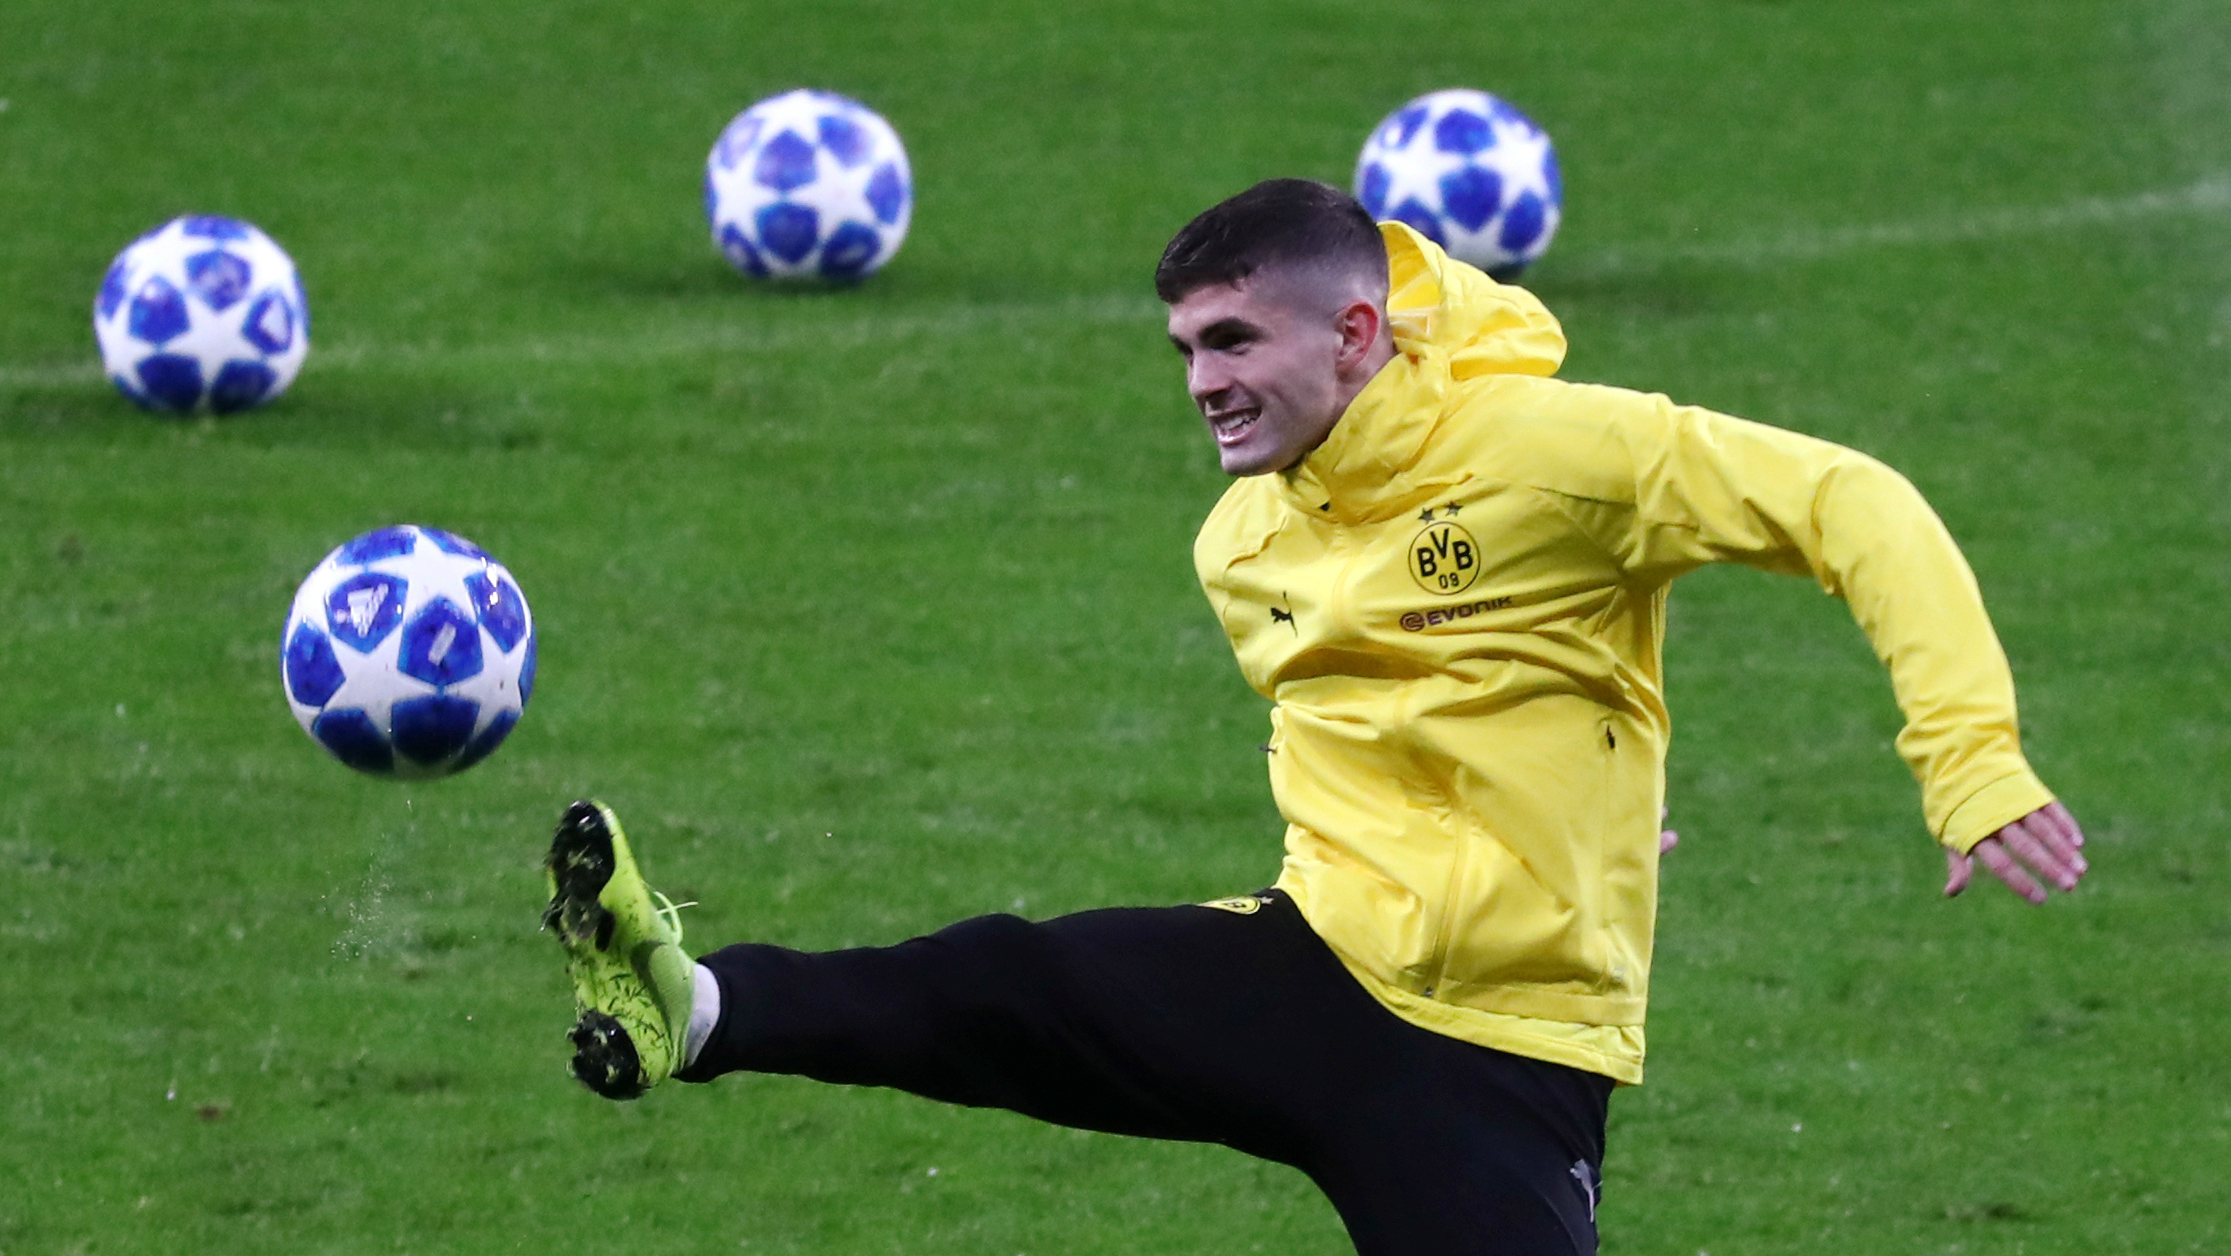 us soccer s christian pulisic likely headed to chelsea fc quartz